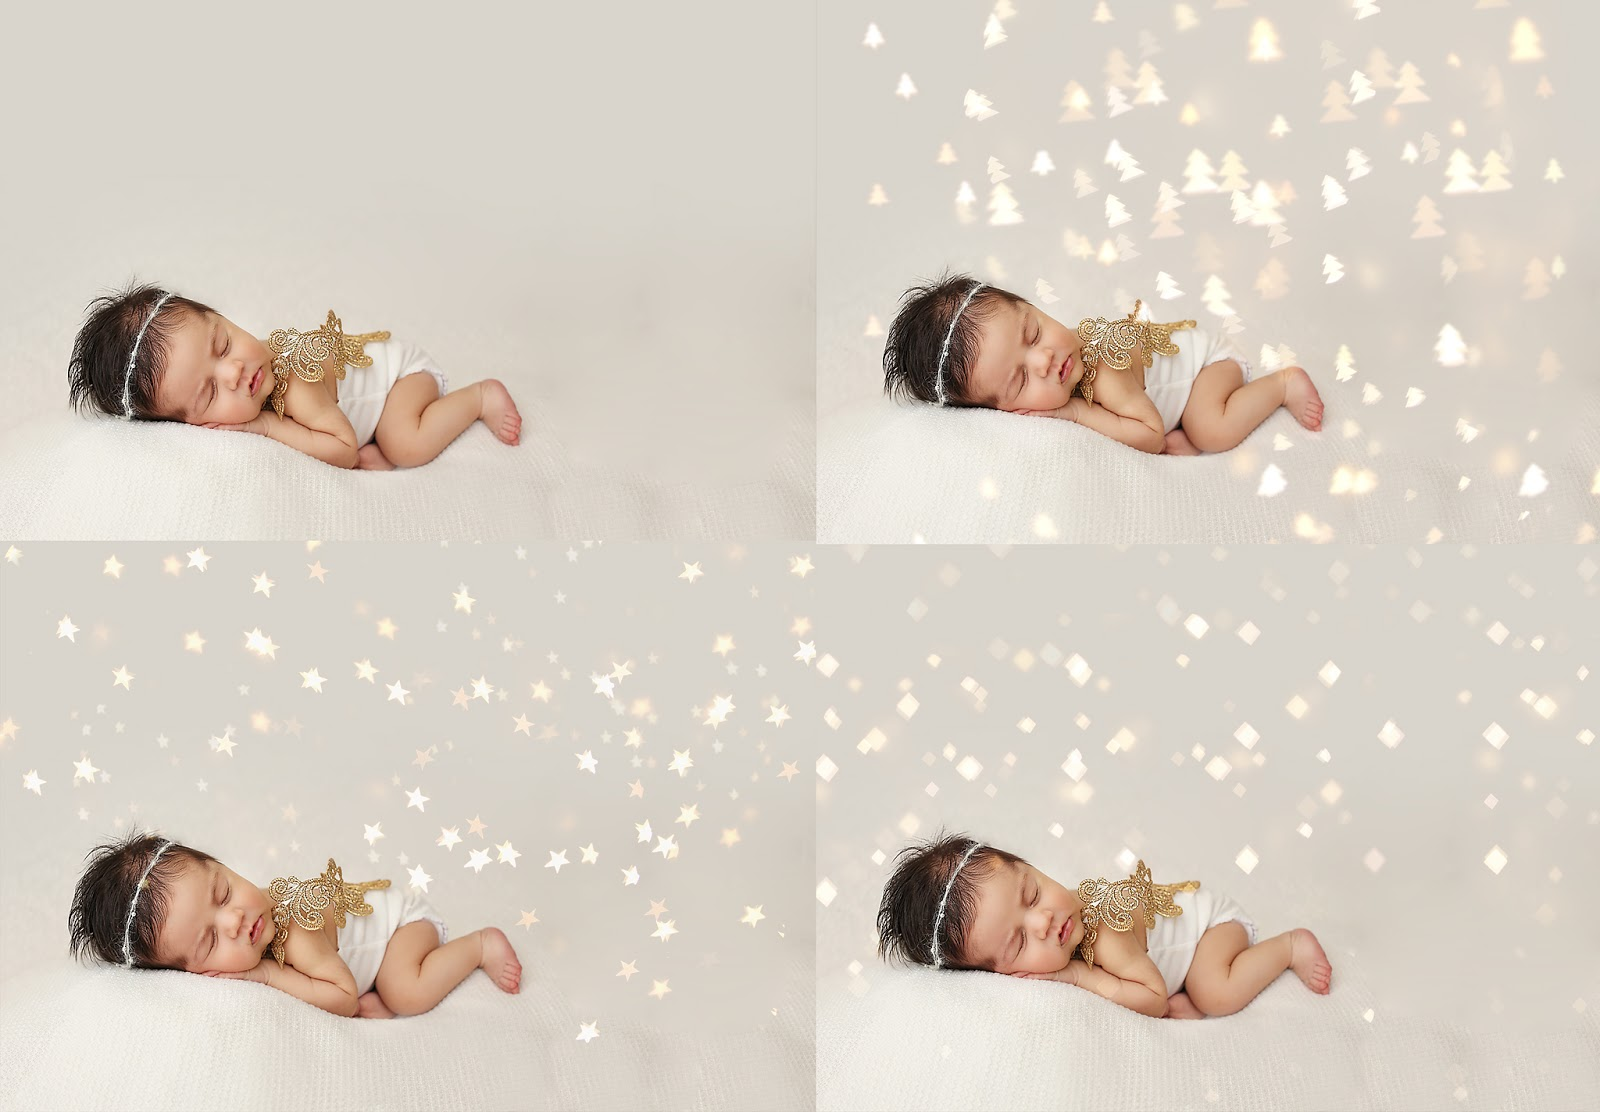 All about Christmas Bokeh Light Overlays - Complete Guide